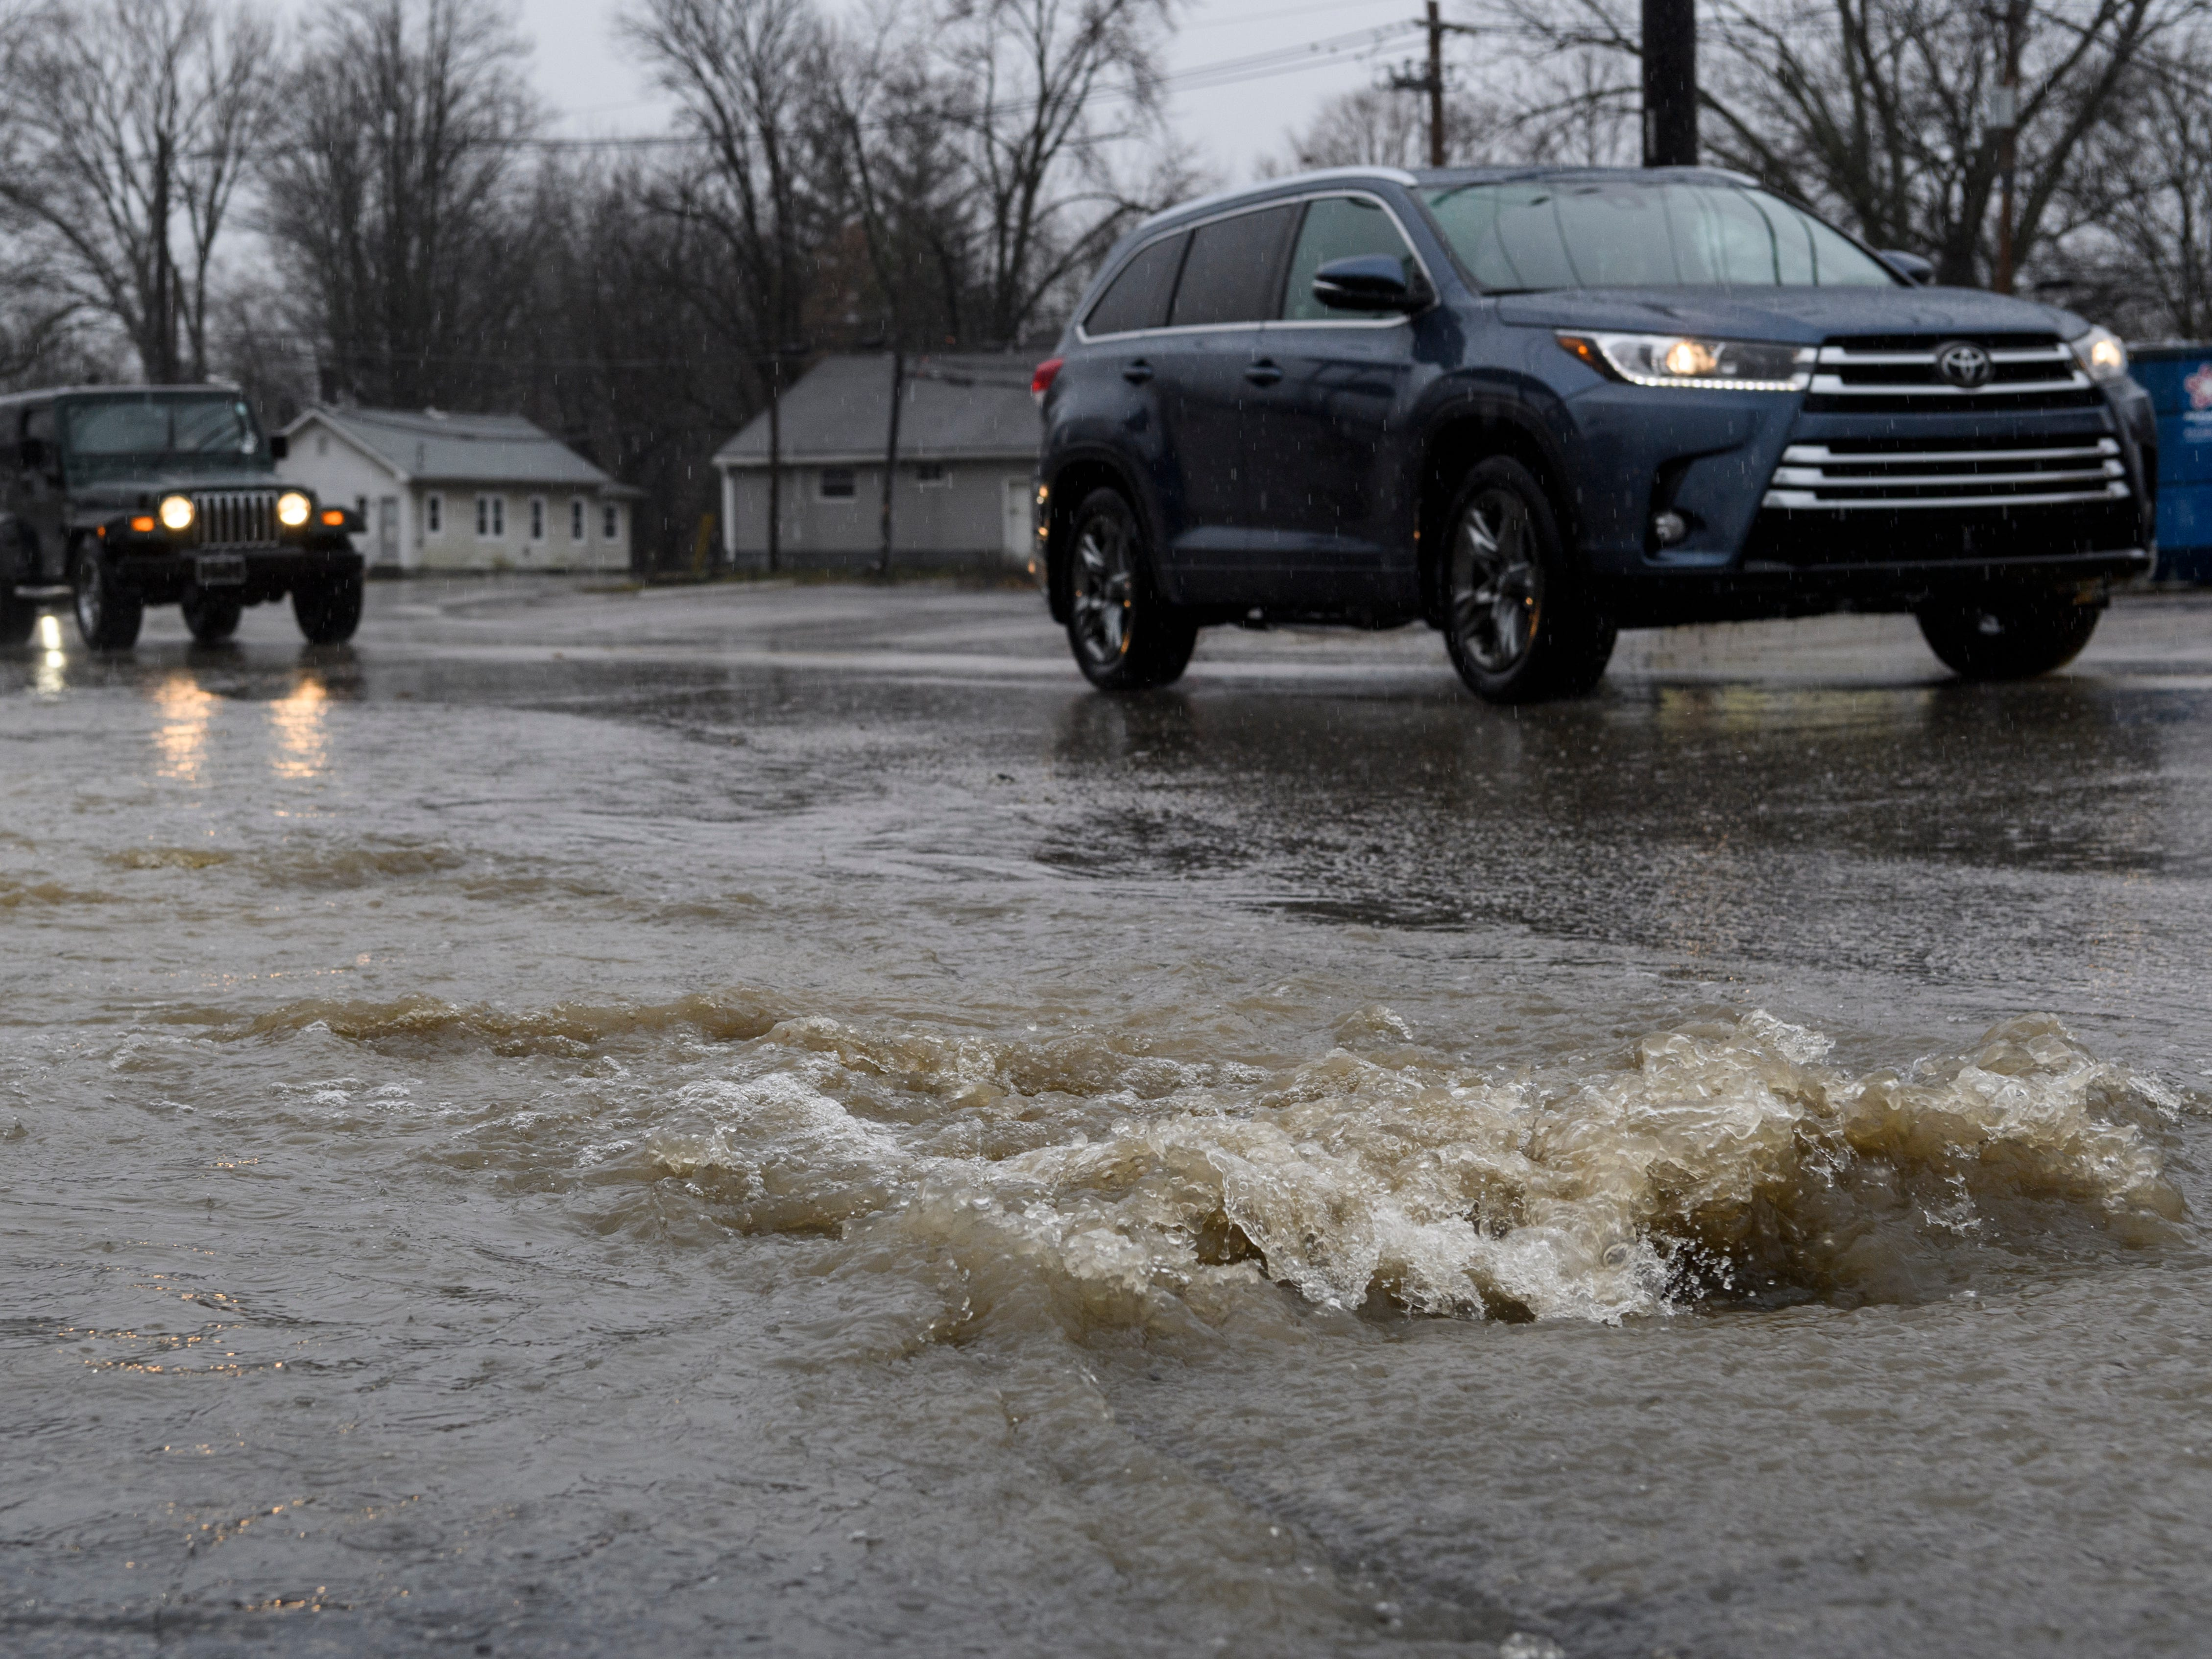 Heavy rain causes standing water to flood the roads near the intersection of North Tekoppel Avenue and Upper Mount Vernon Road on Evansville's west side, Thursday, Feb. 7, 2019.